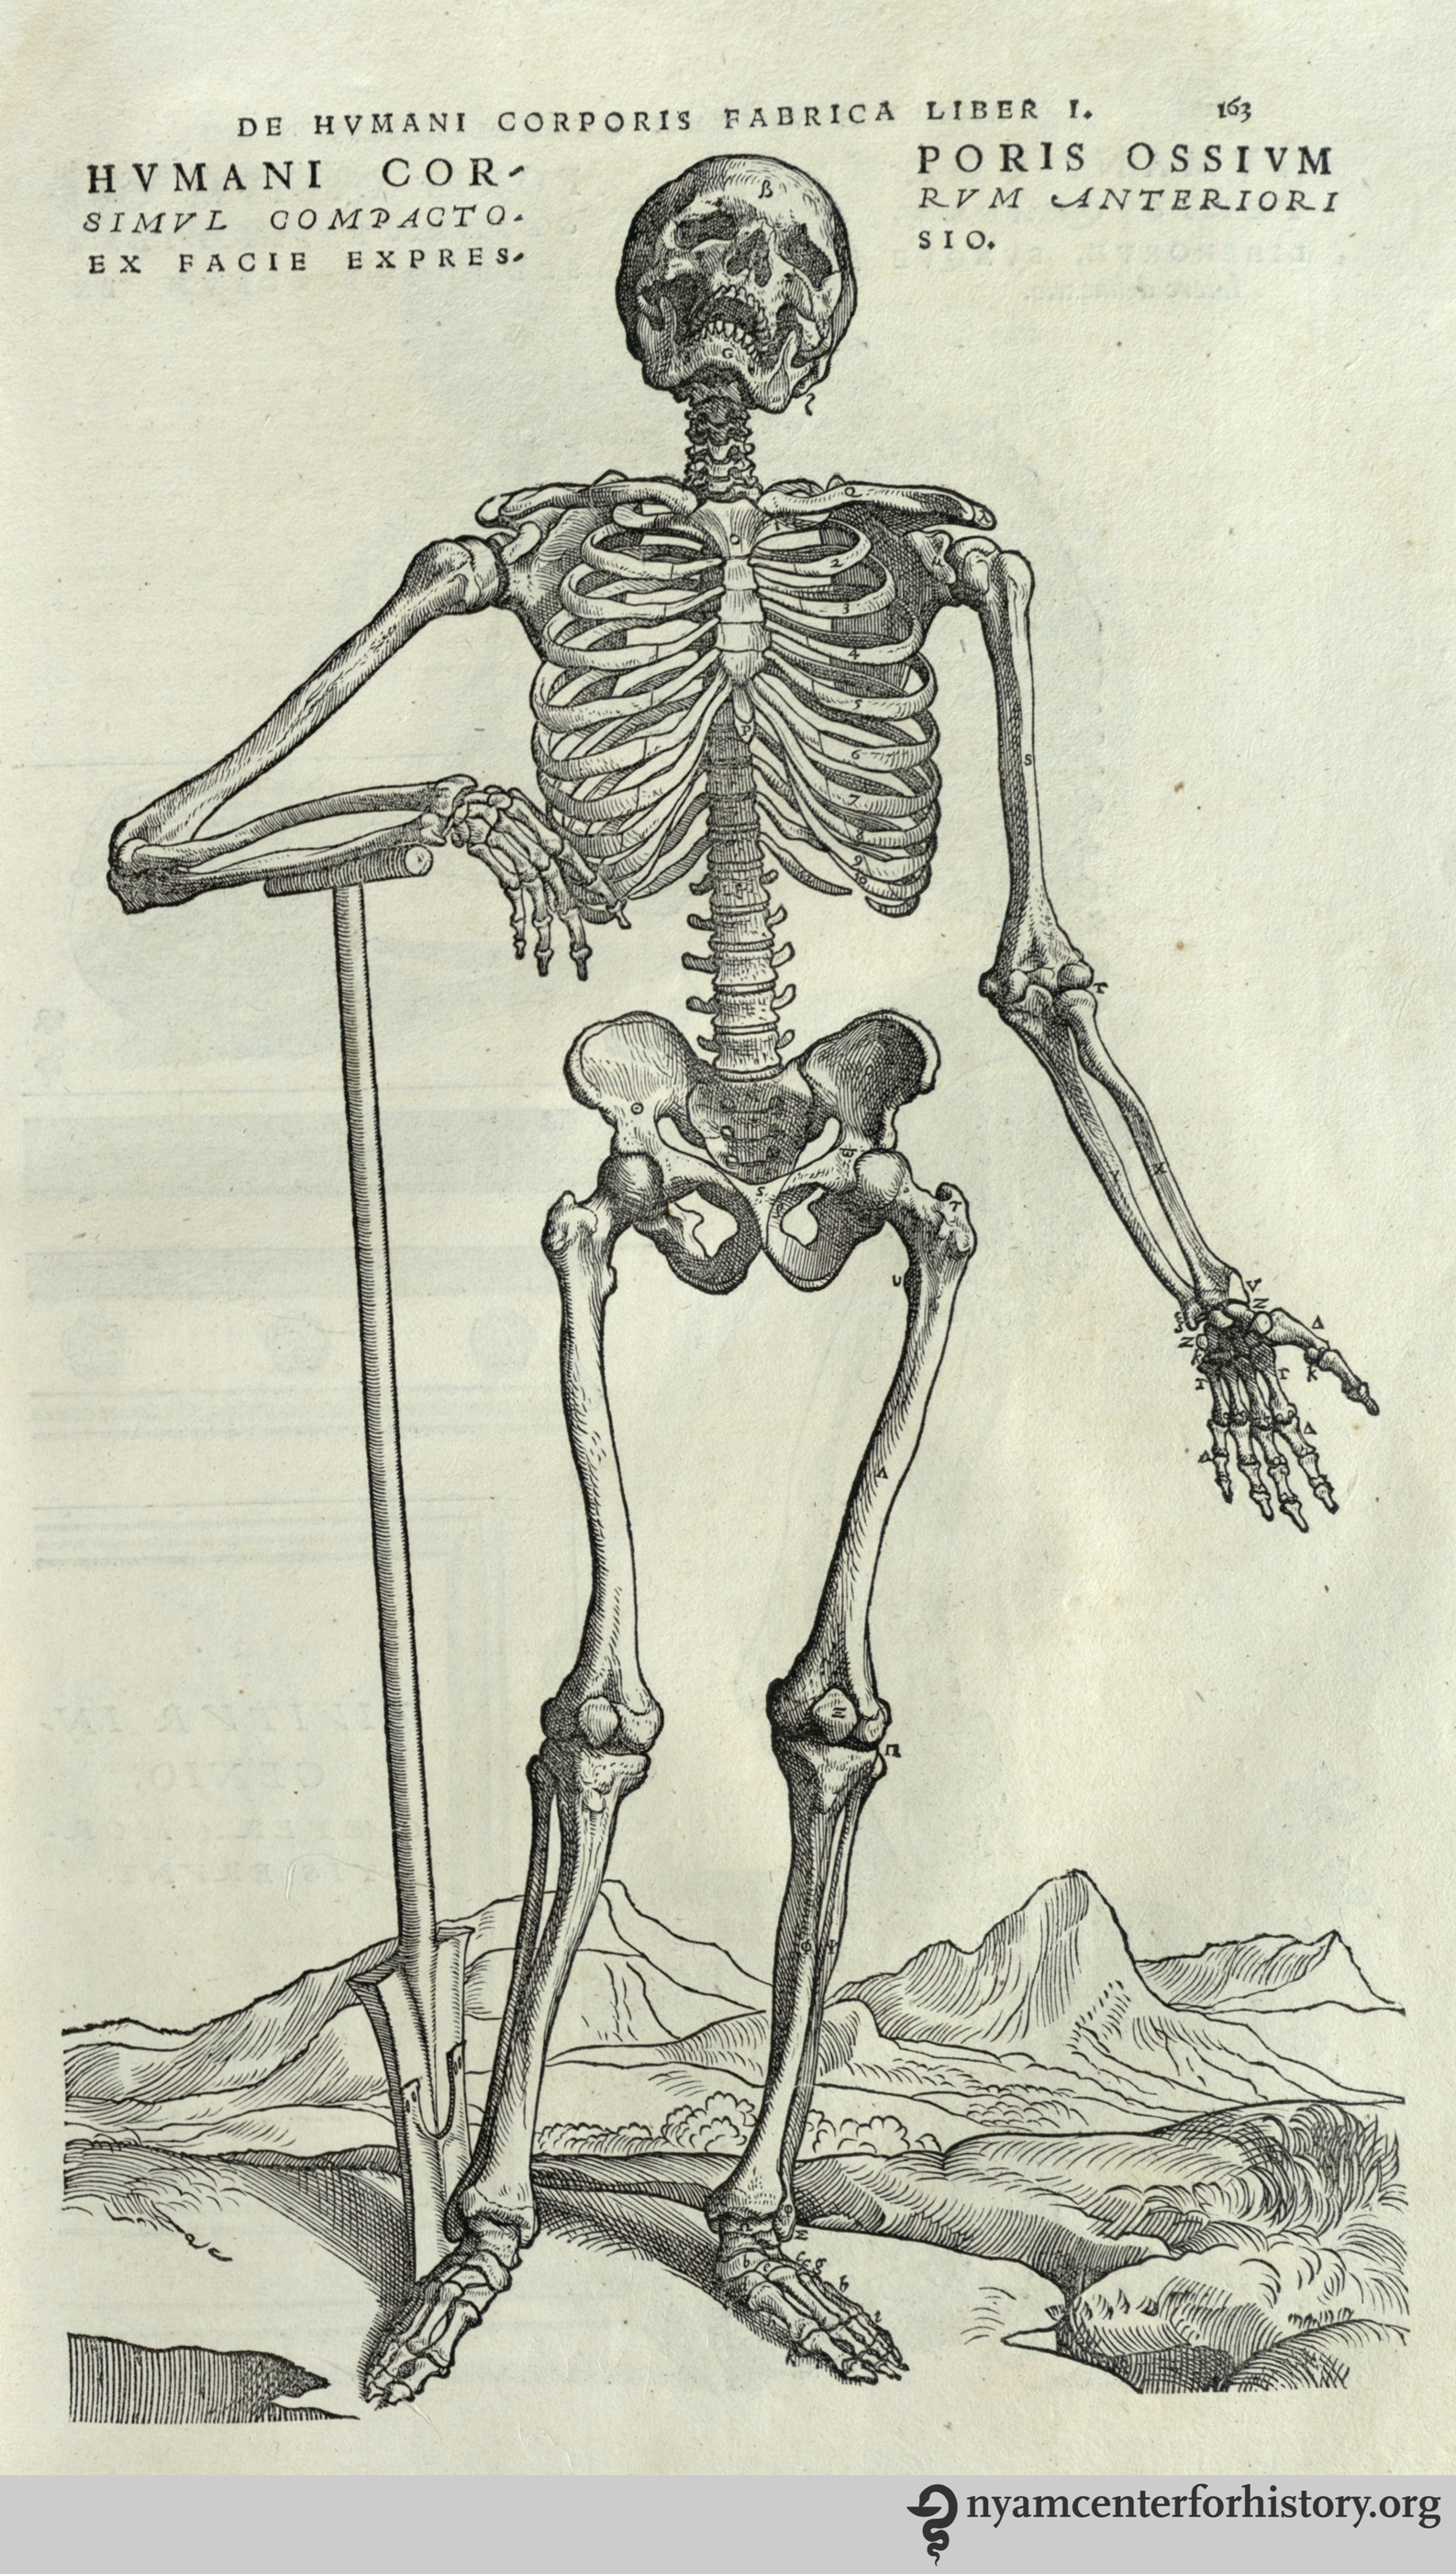 Andreas Vesalius Books Health And History